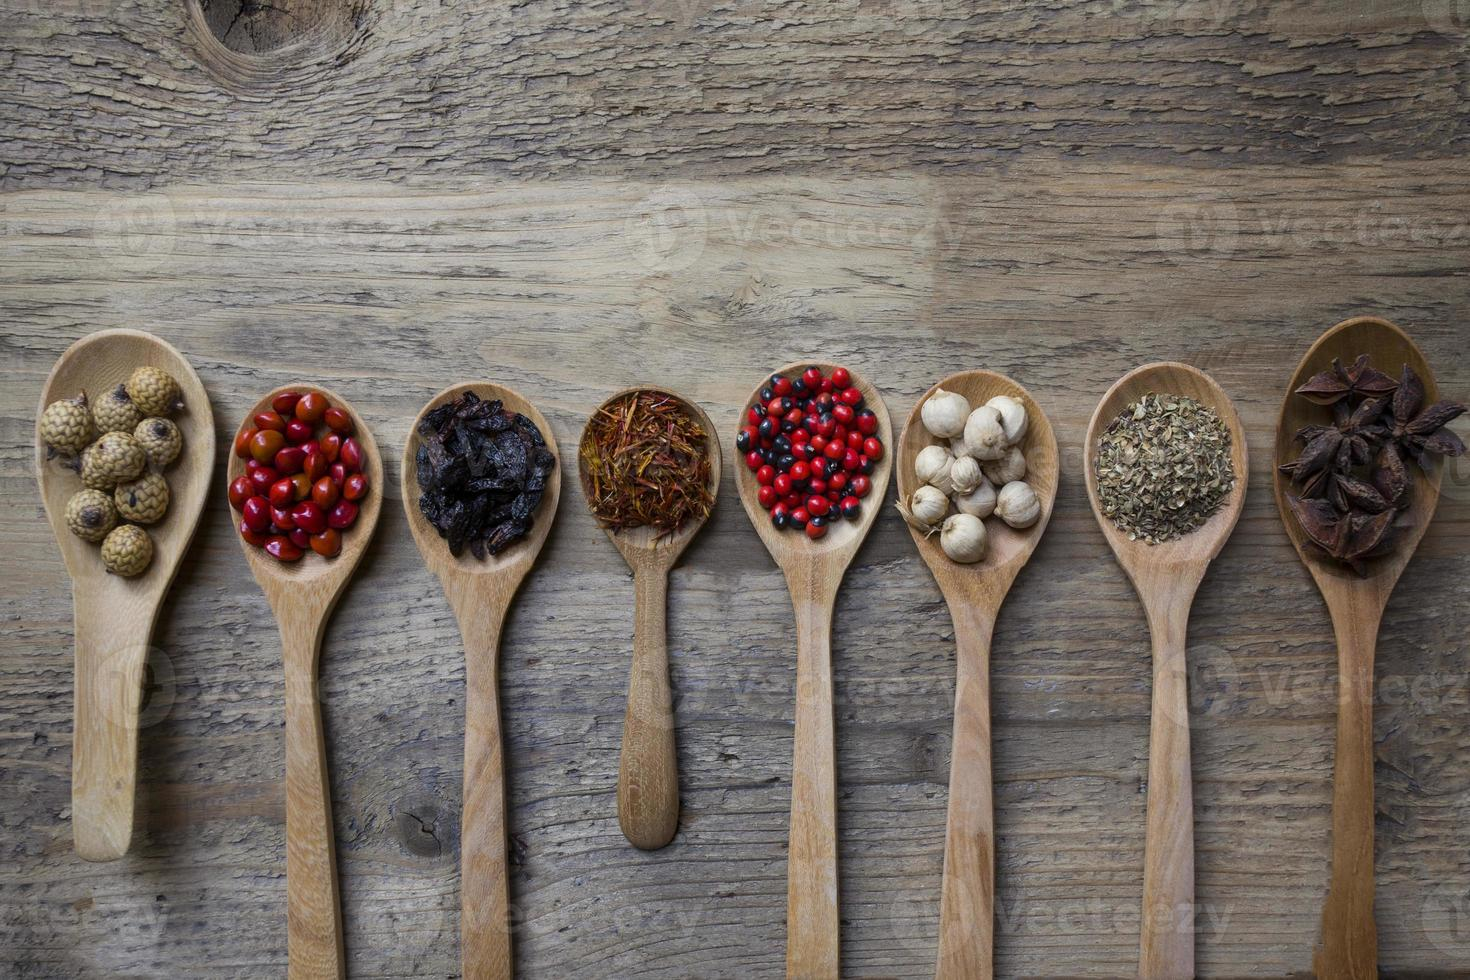 Spices on wood spoons photo